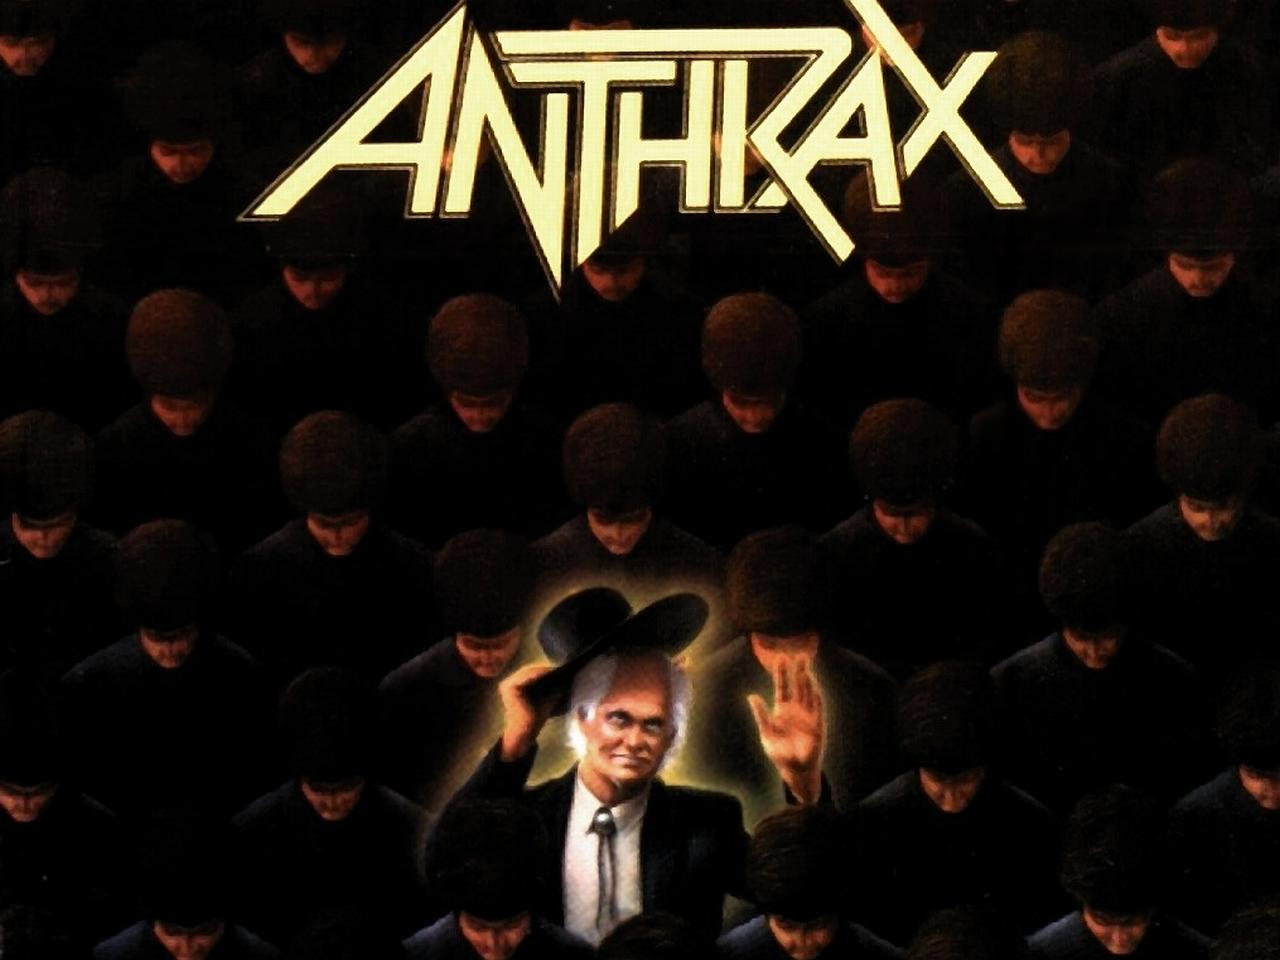 Anthrax Wallpapers and Background Images   stmednet 1280x960